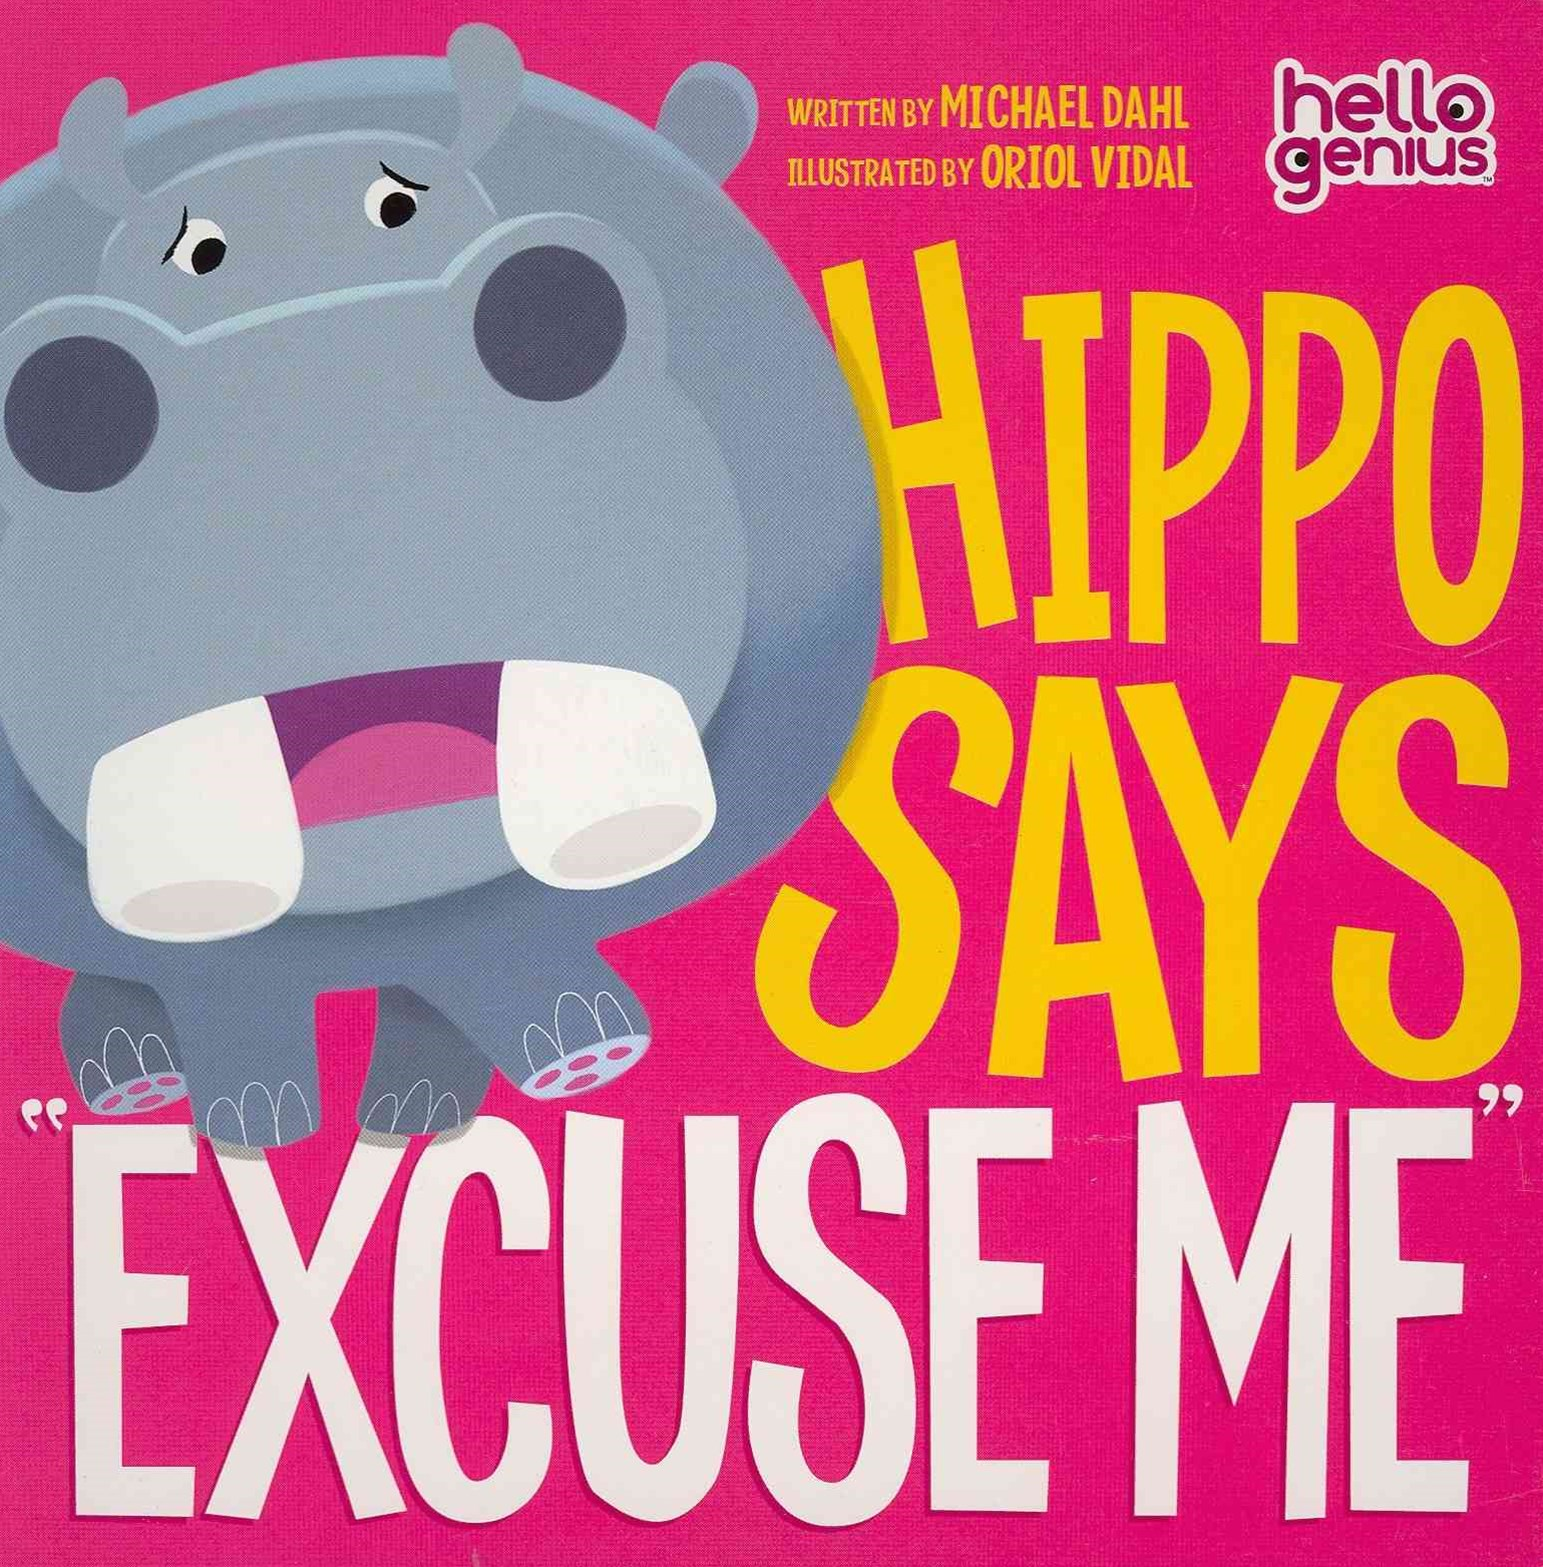 Hippo Says &quote;Excuse Me&quote;